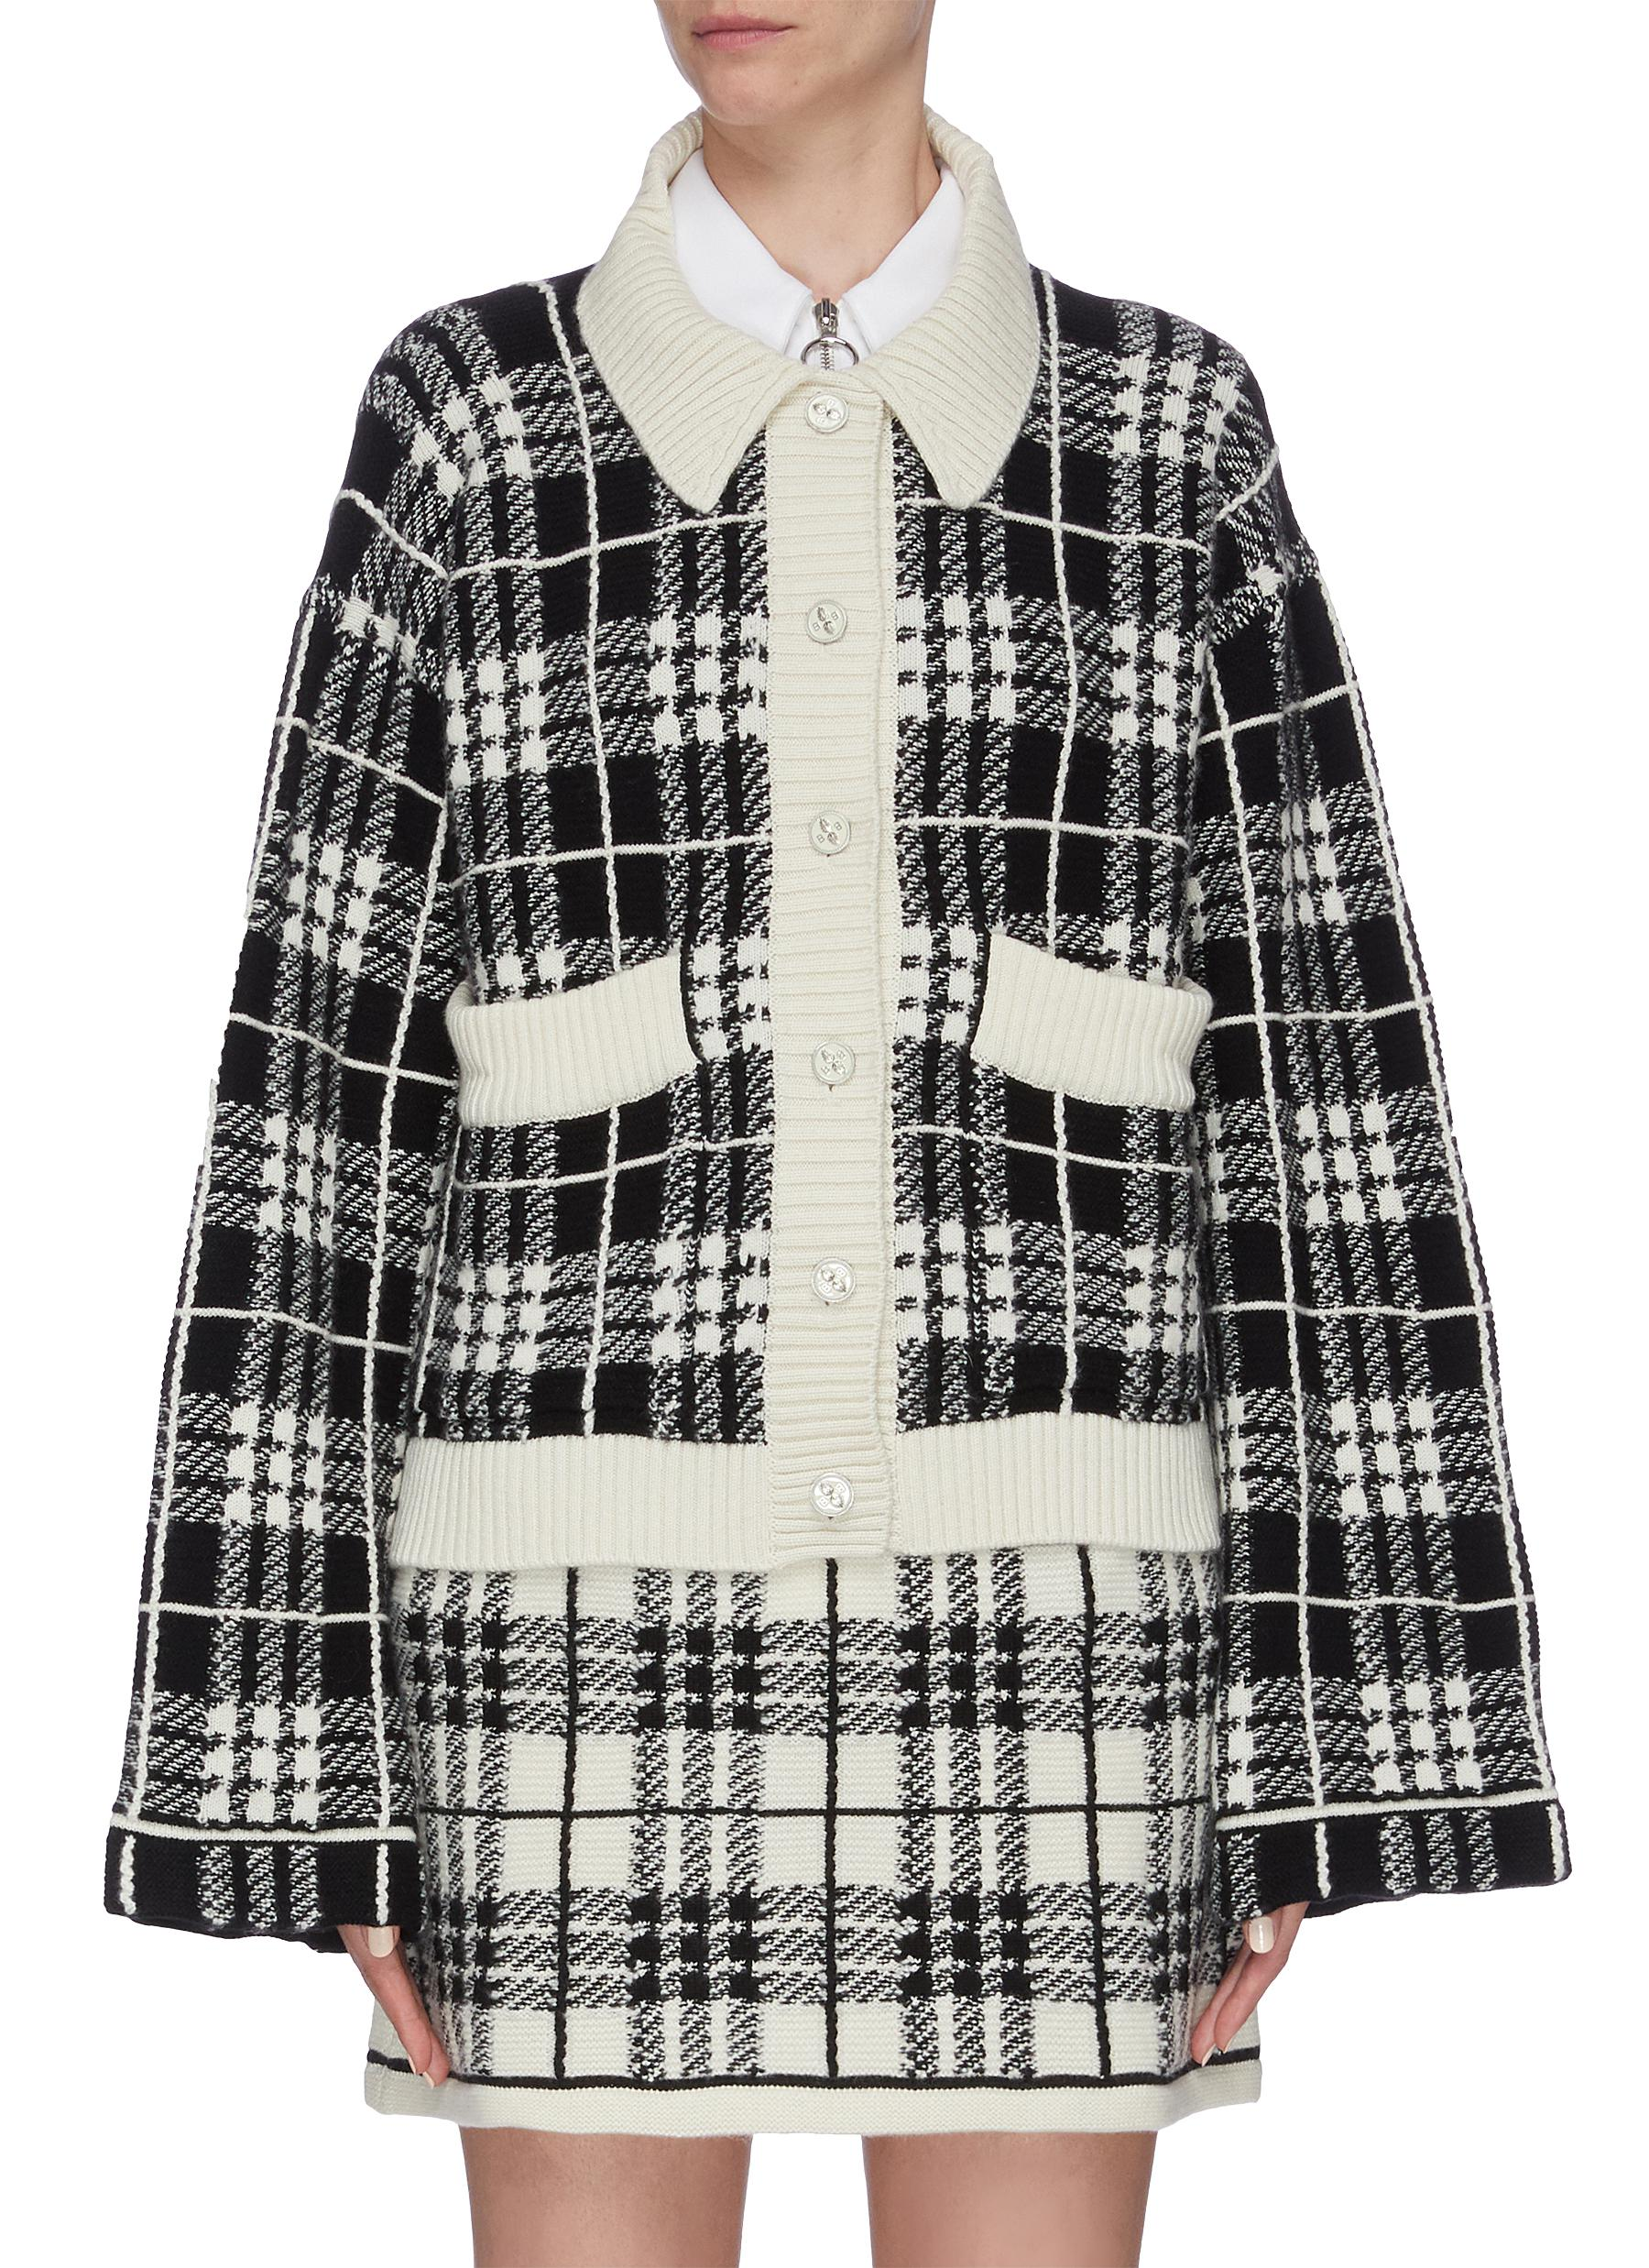 Tartan plaid cashmere cardigan by Barrie